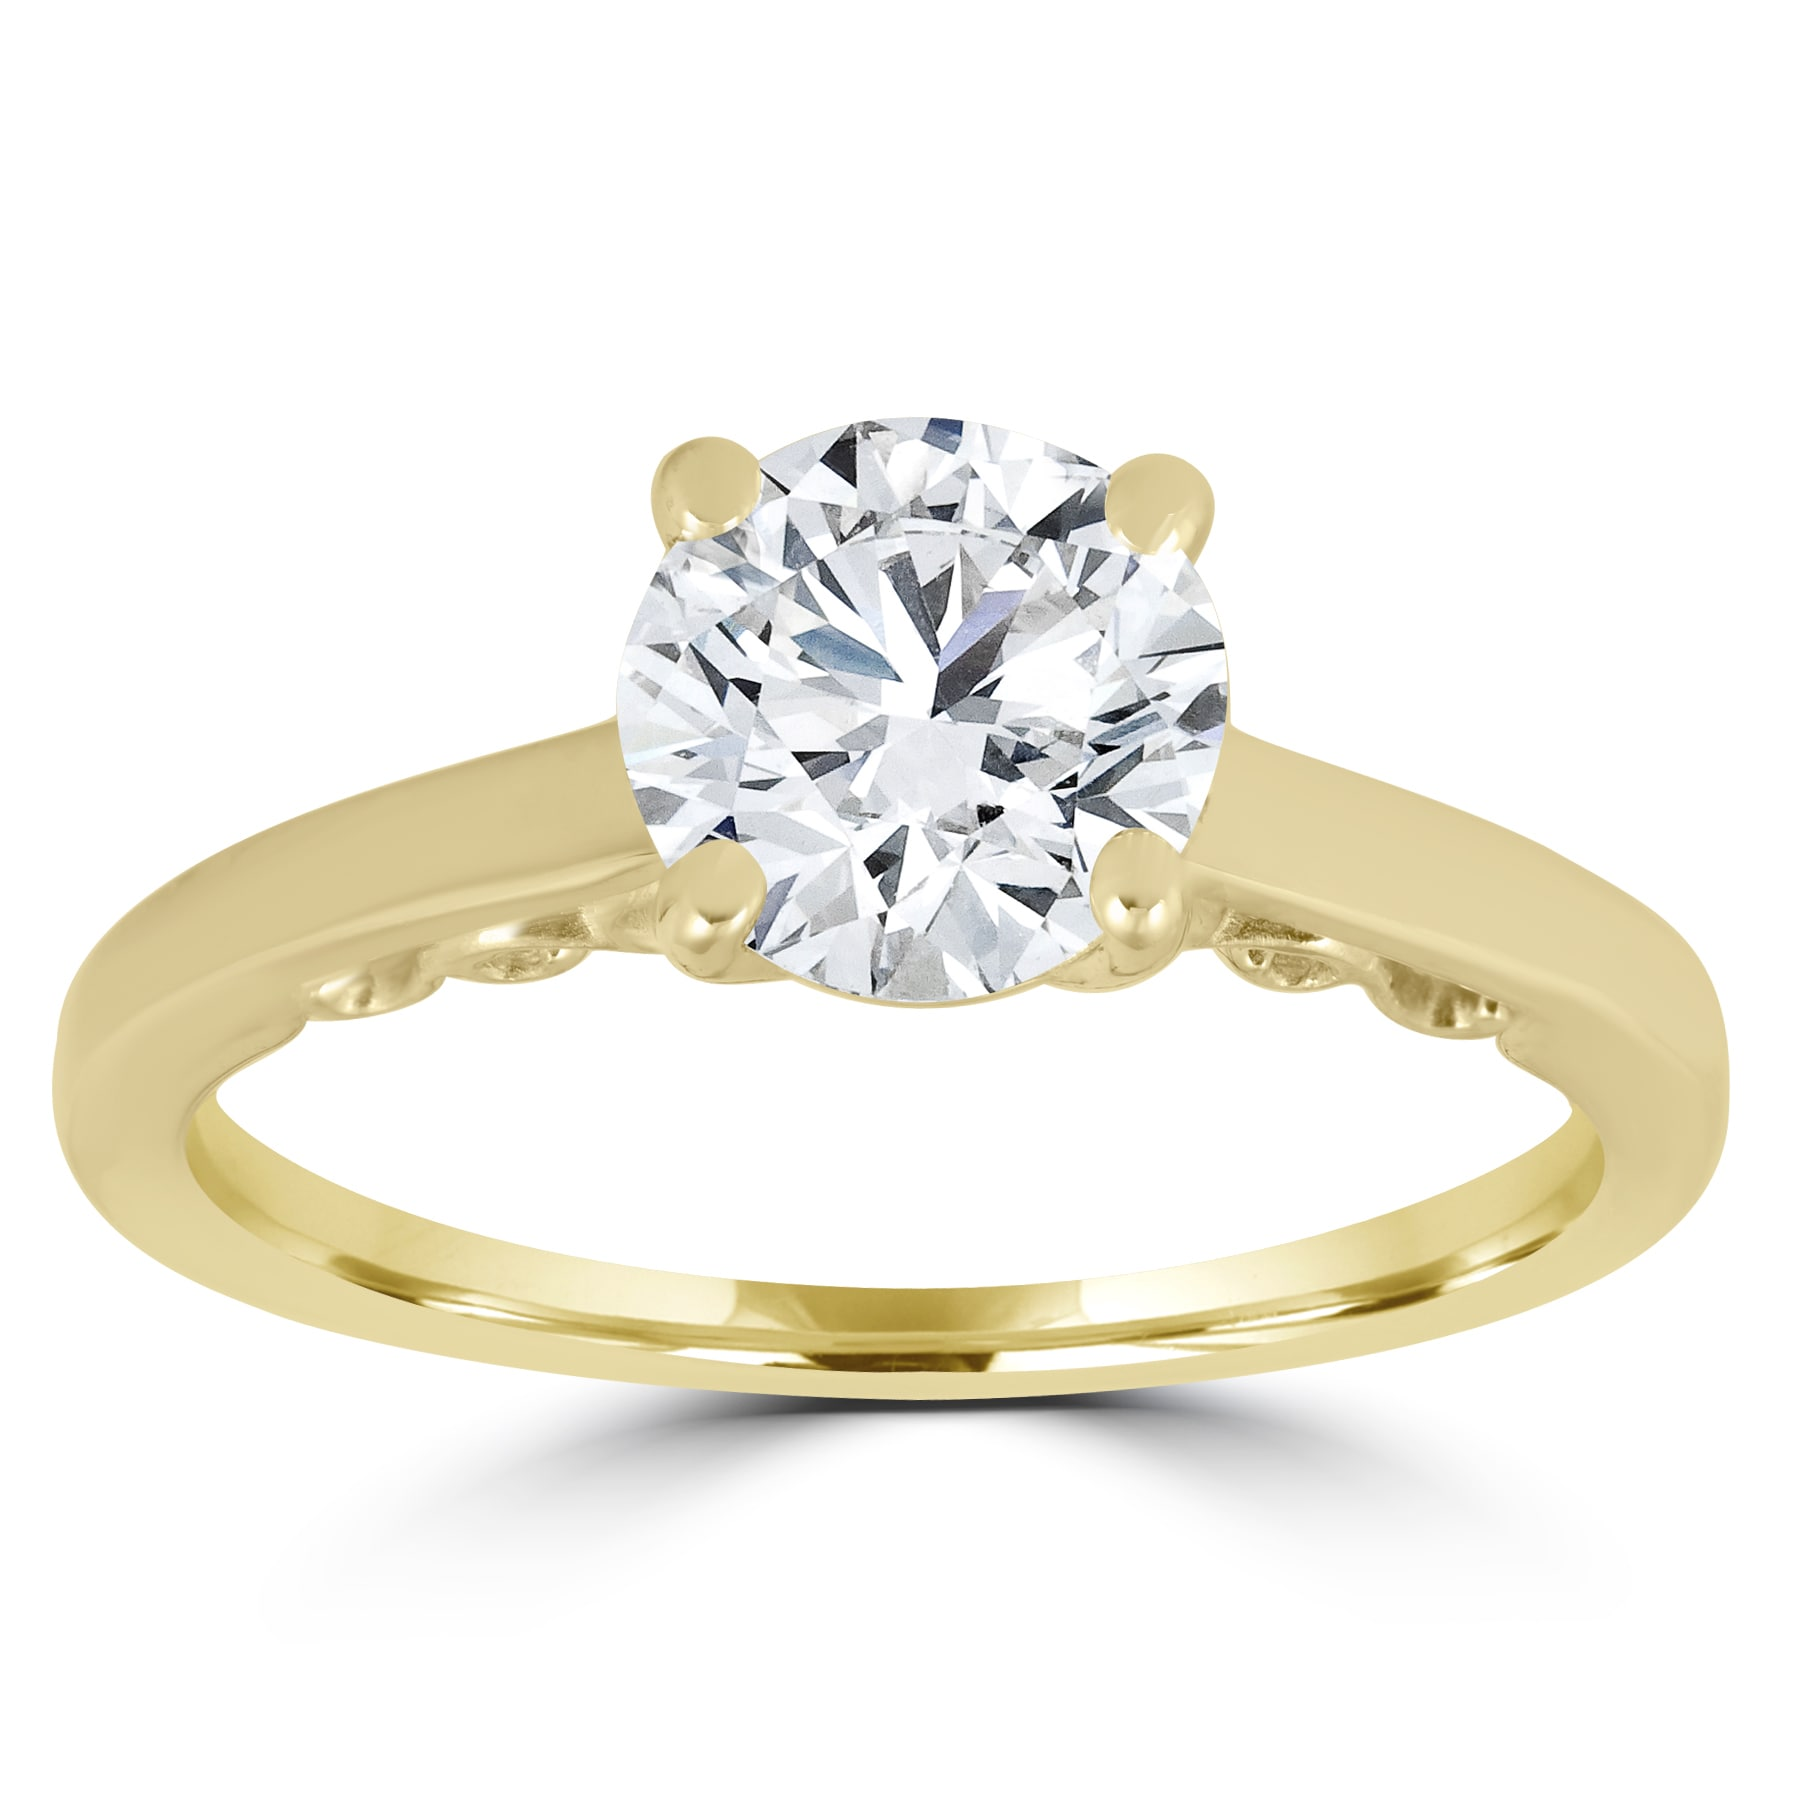 1Ct Round Brilliant Cut Diamond Solitaire Engagement Ring 14K Yellow Gold Finish